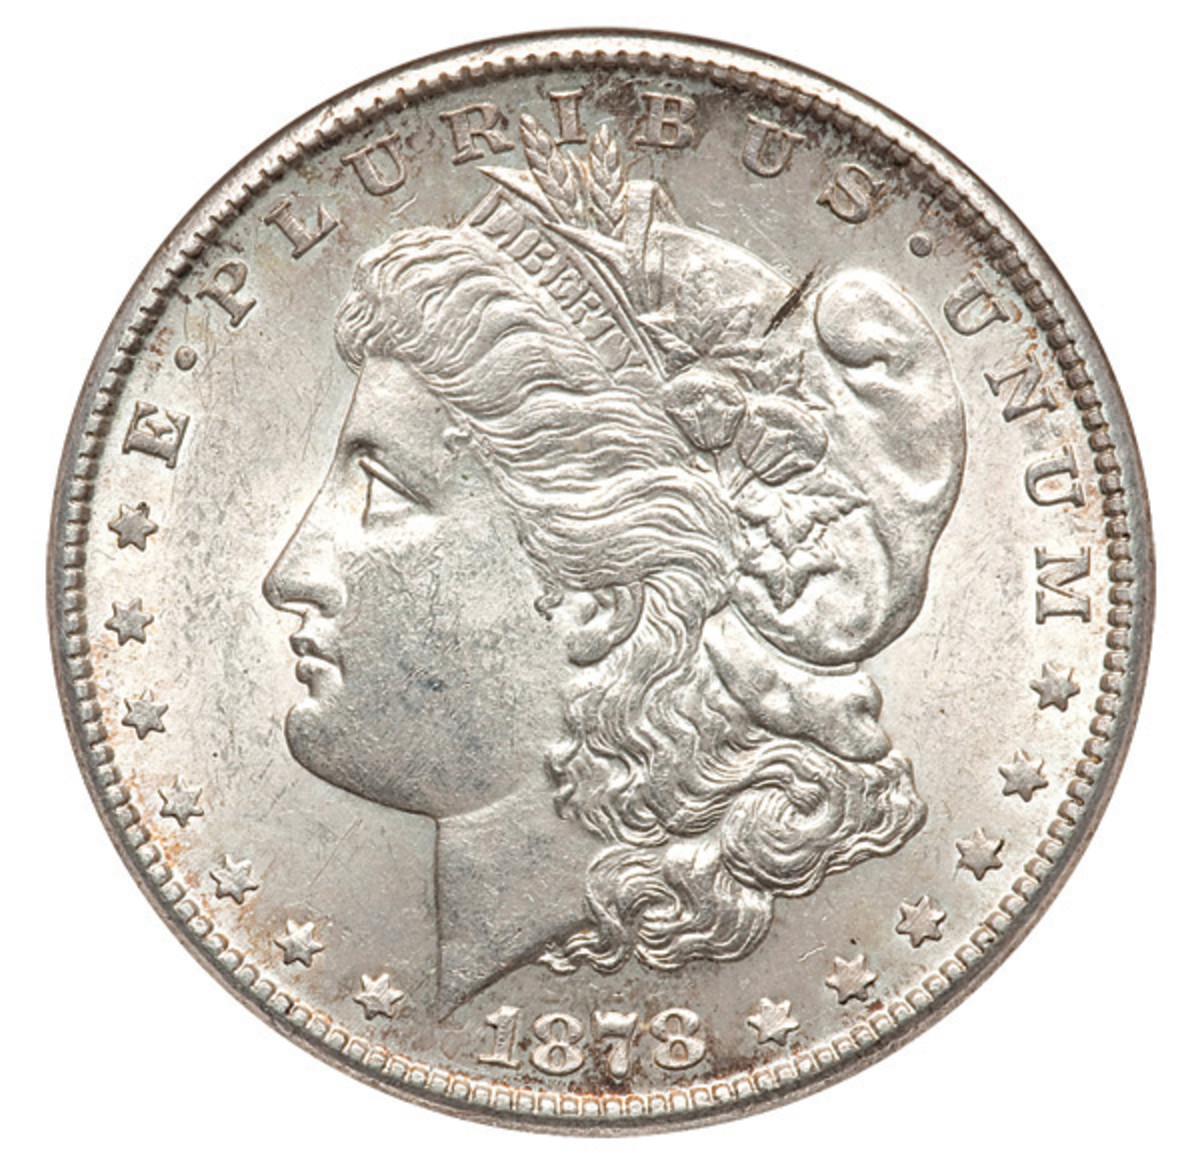 1878-S Morgan dollar (Image courtesy Heritage Auctions)